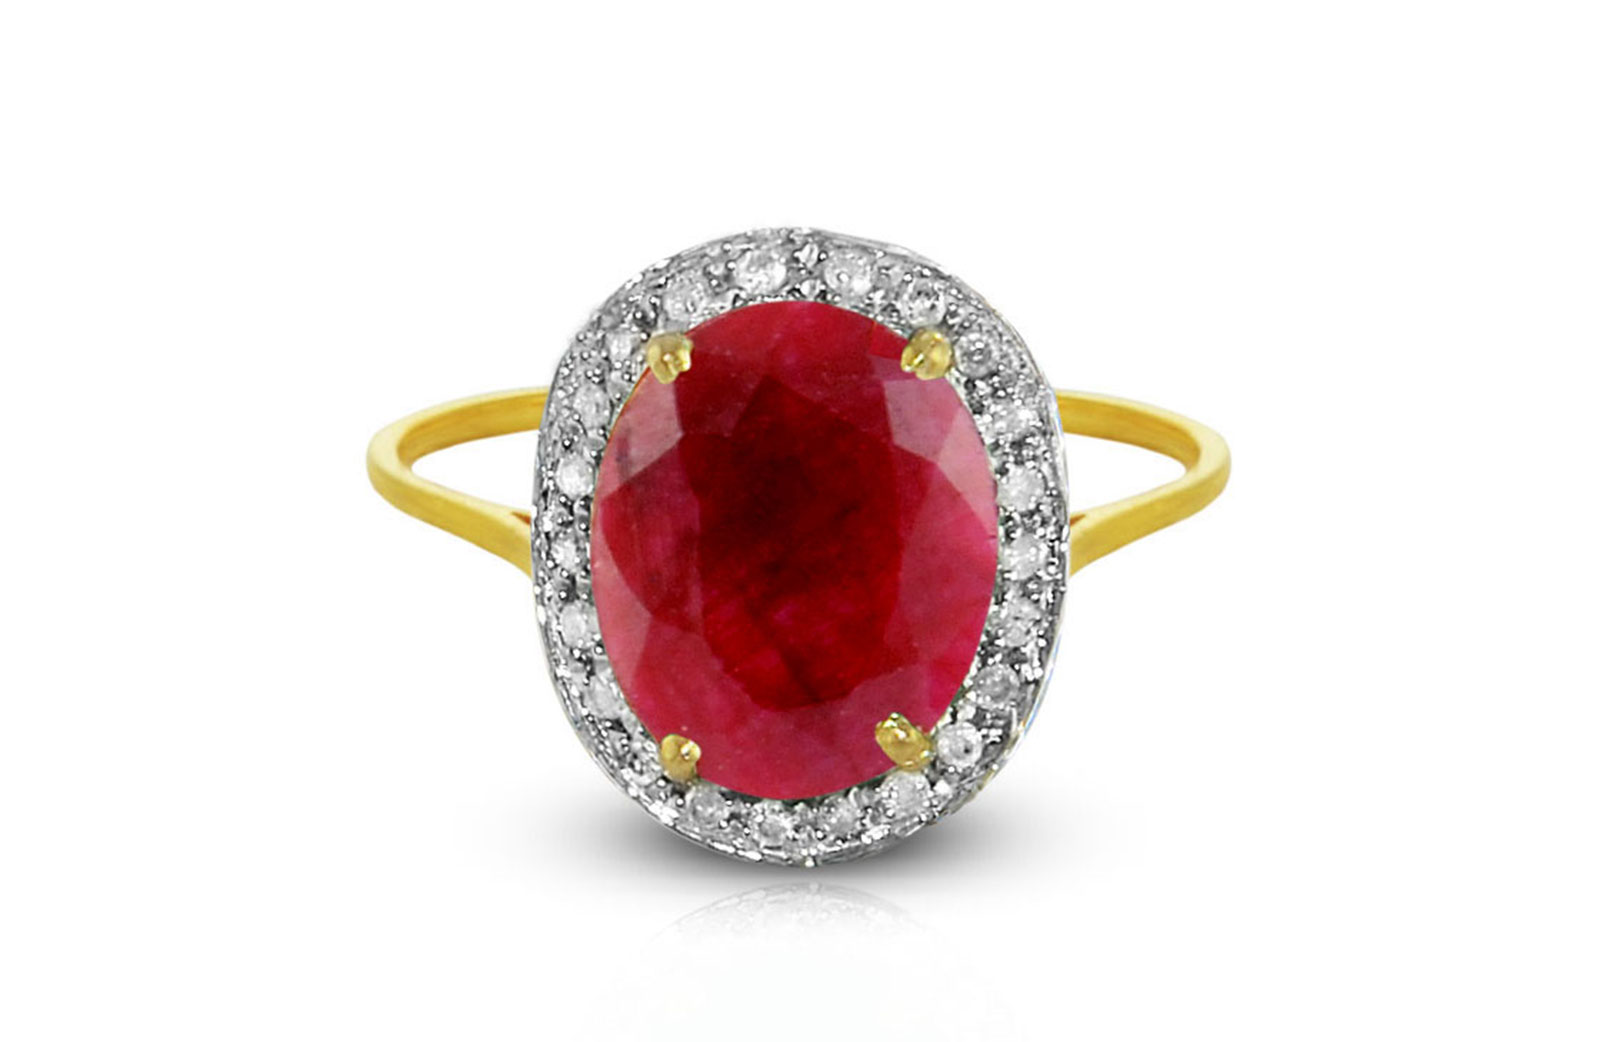 Vera Perla 18K Gold 0.12ct Diamonds, 10mm Oval Ruby Ring, Size 6.5 US